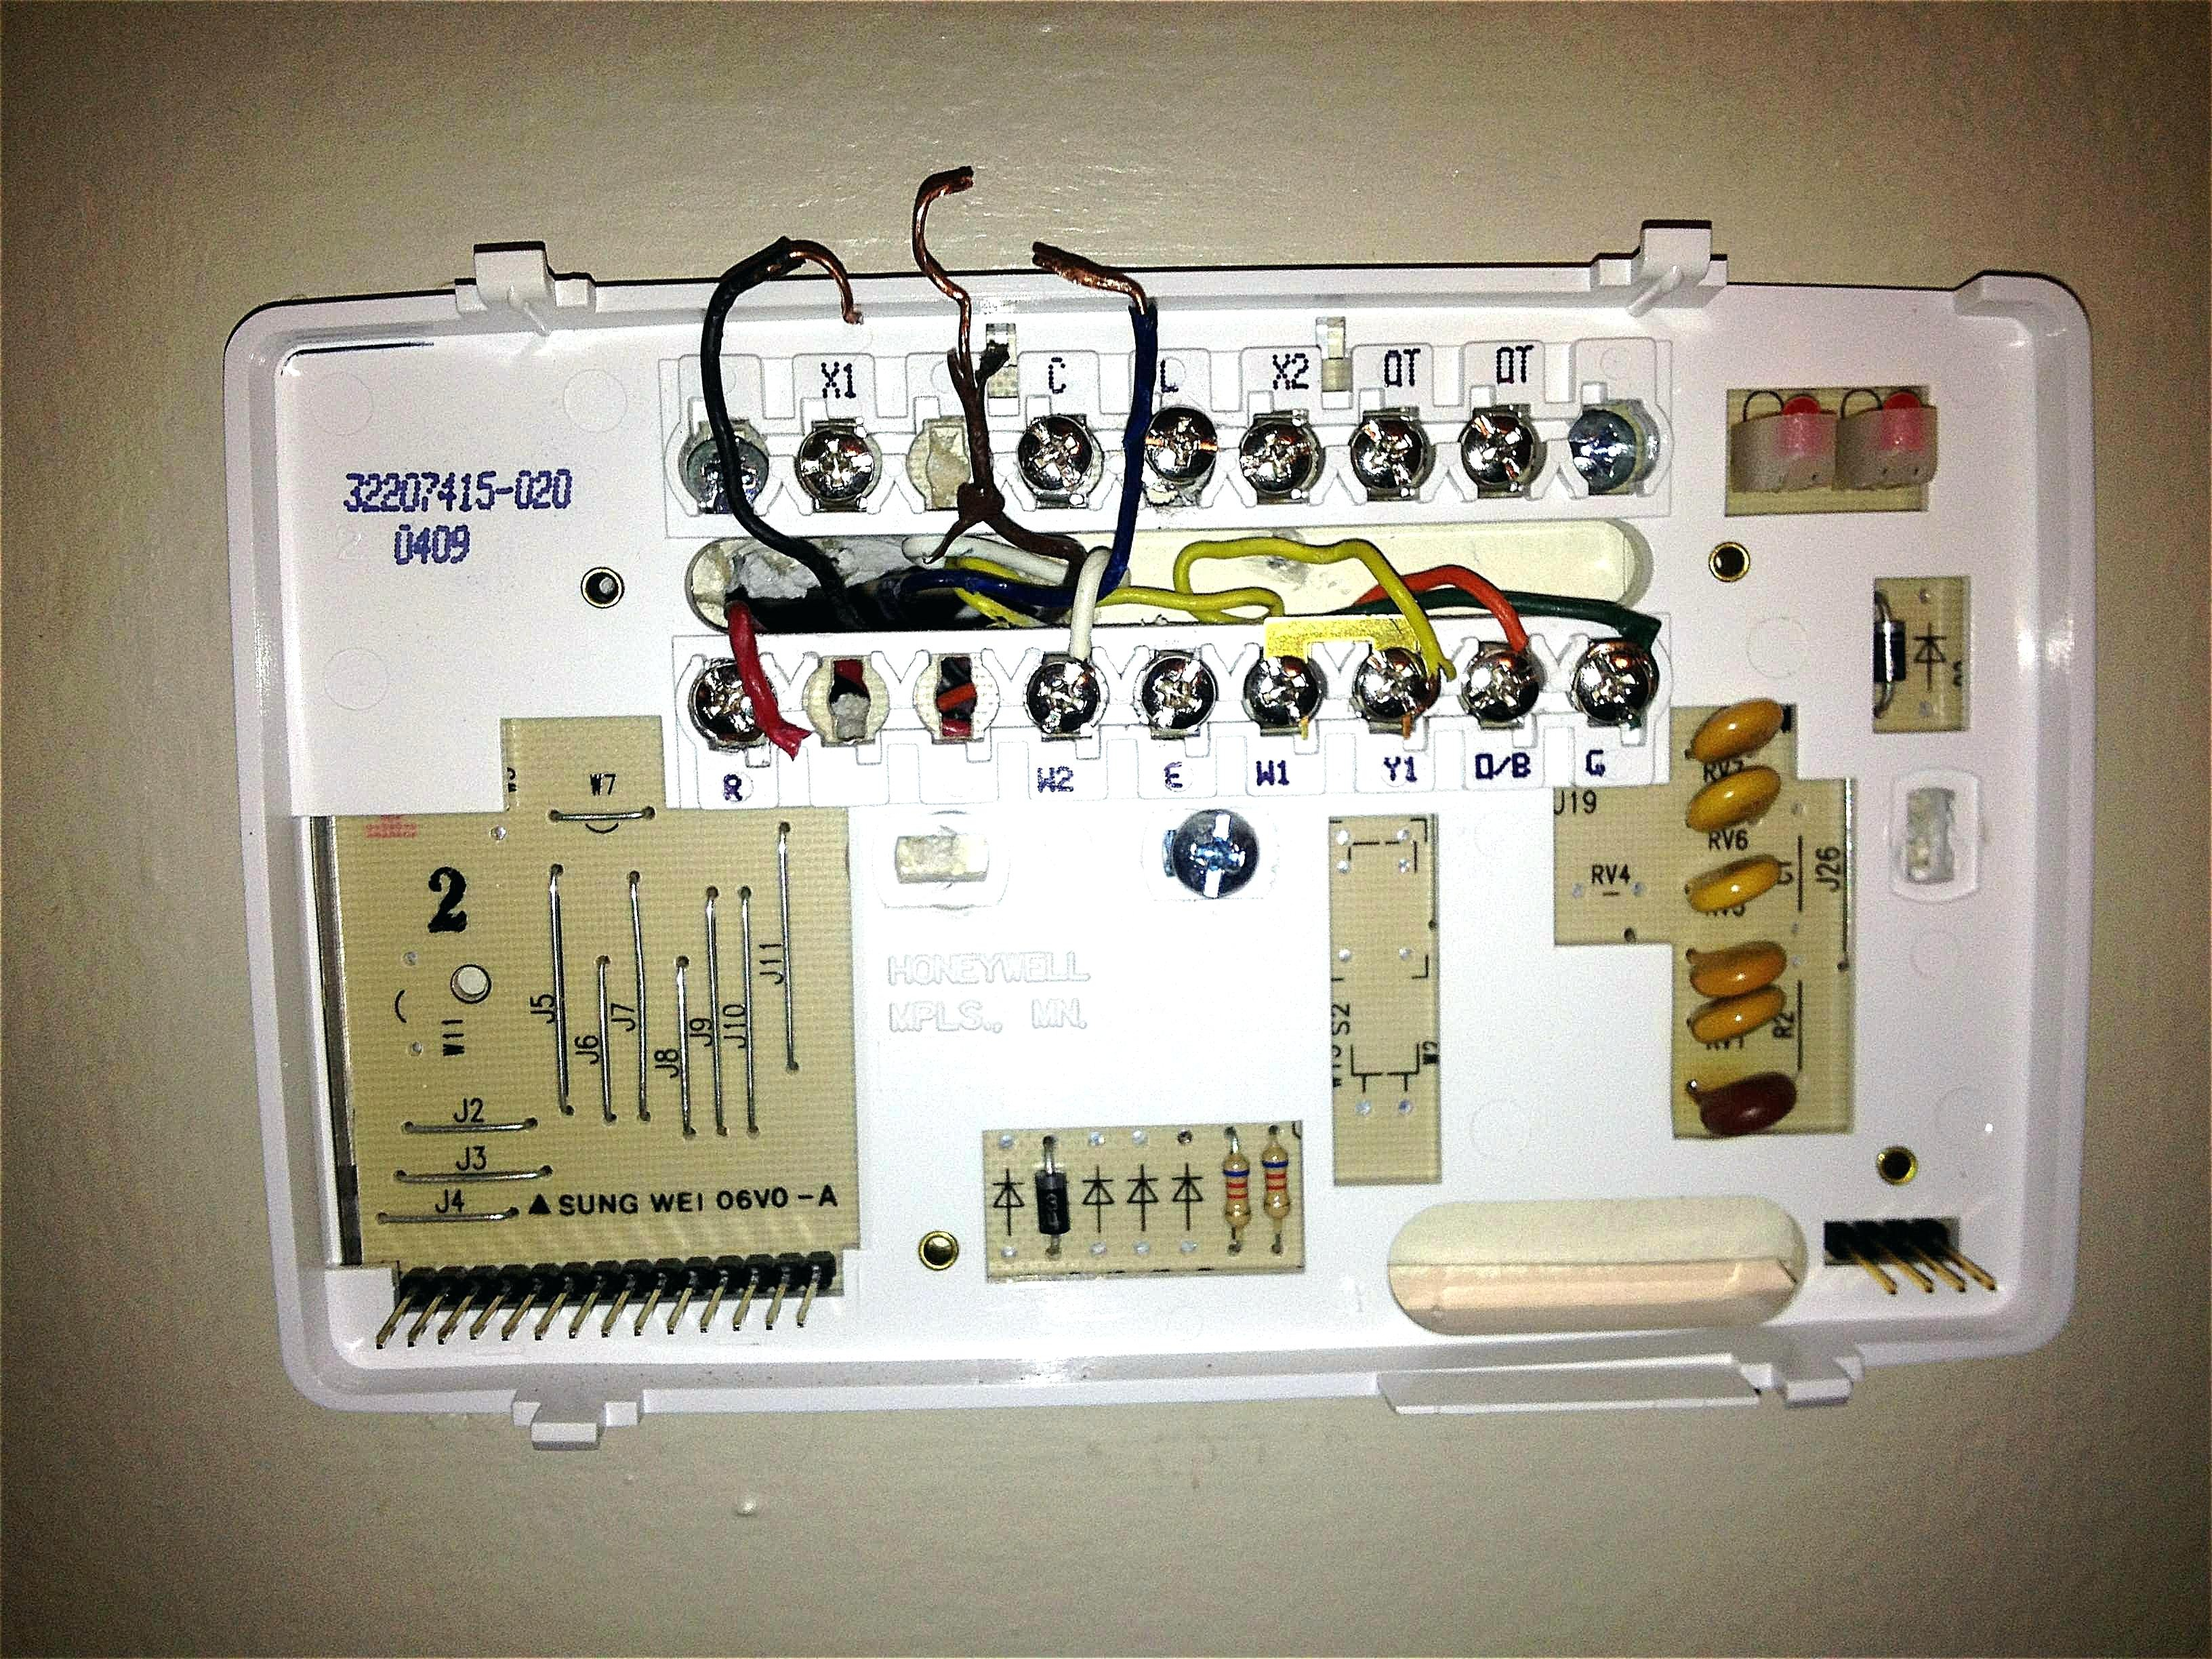 Get Honeywell Thermostat Th3110d1008 Wiring Diagram Download